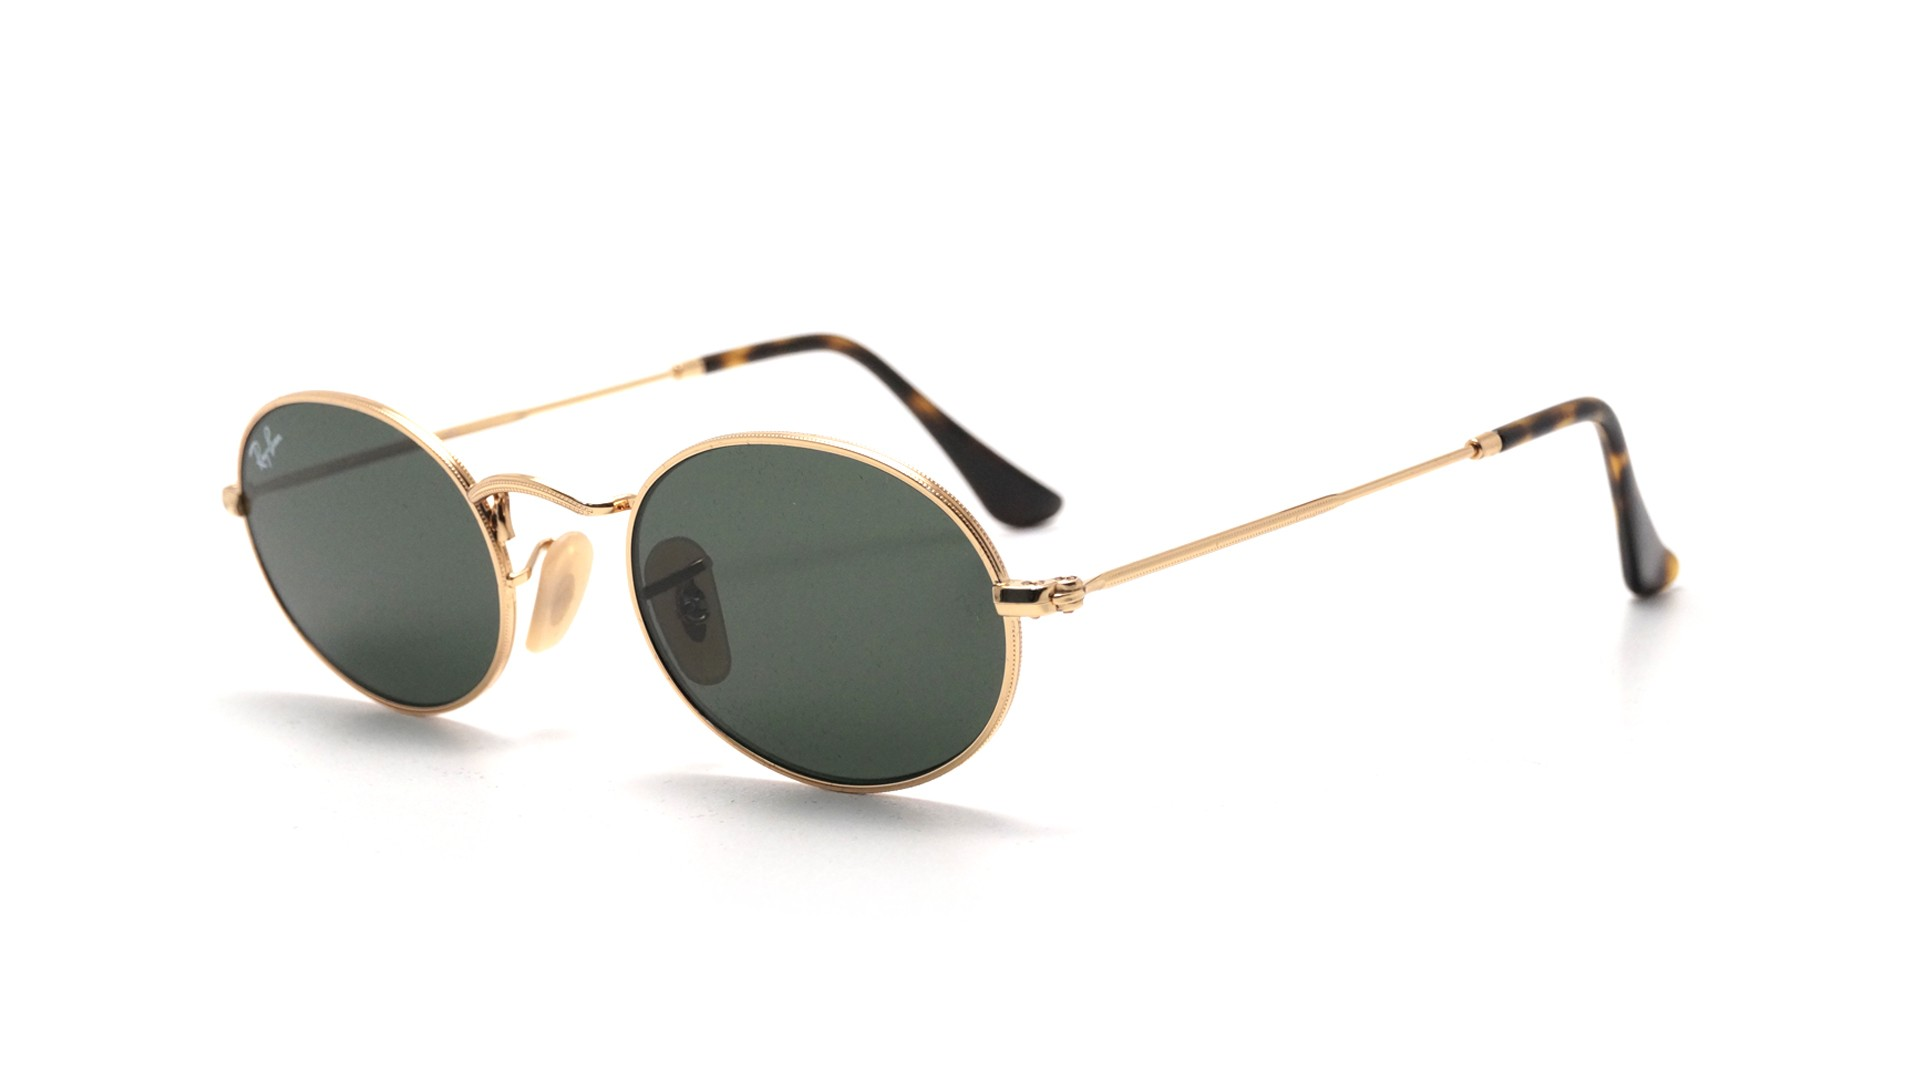 b0bc6ae01af Sunglasses Ray-Ban RB3547N 001 48-21 Gold G15 Small